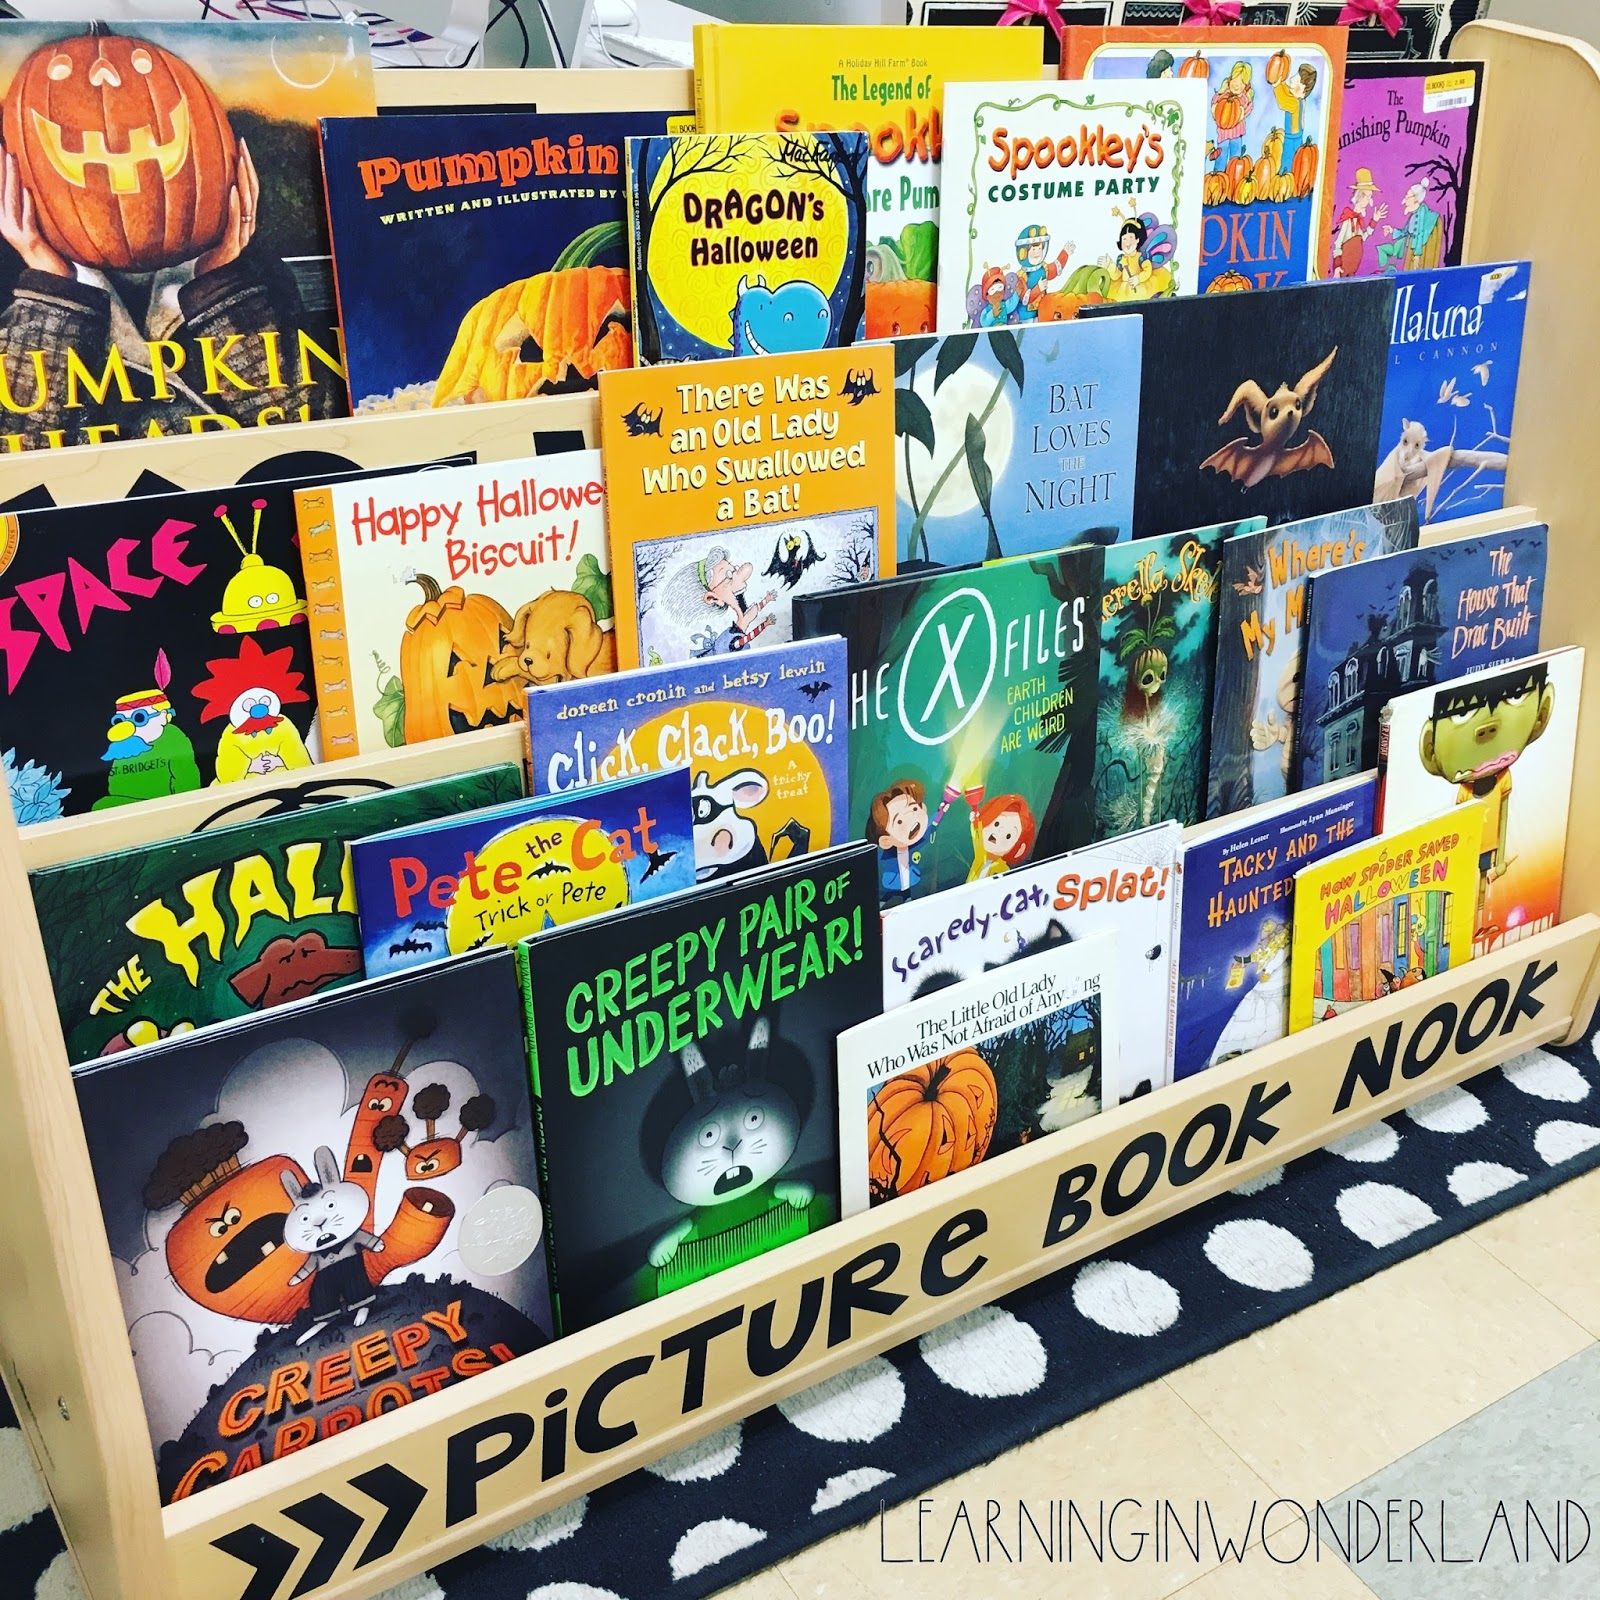 October Books for grades K-5